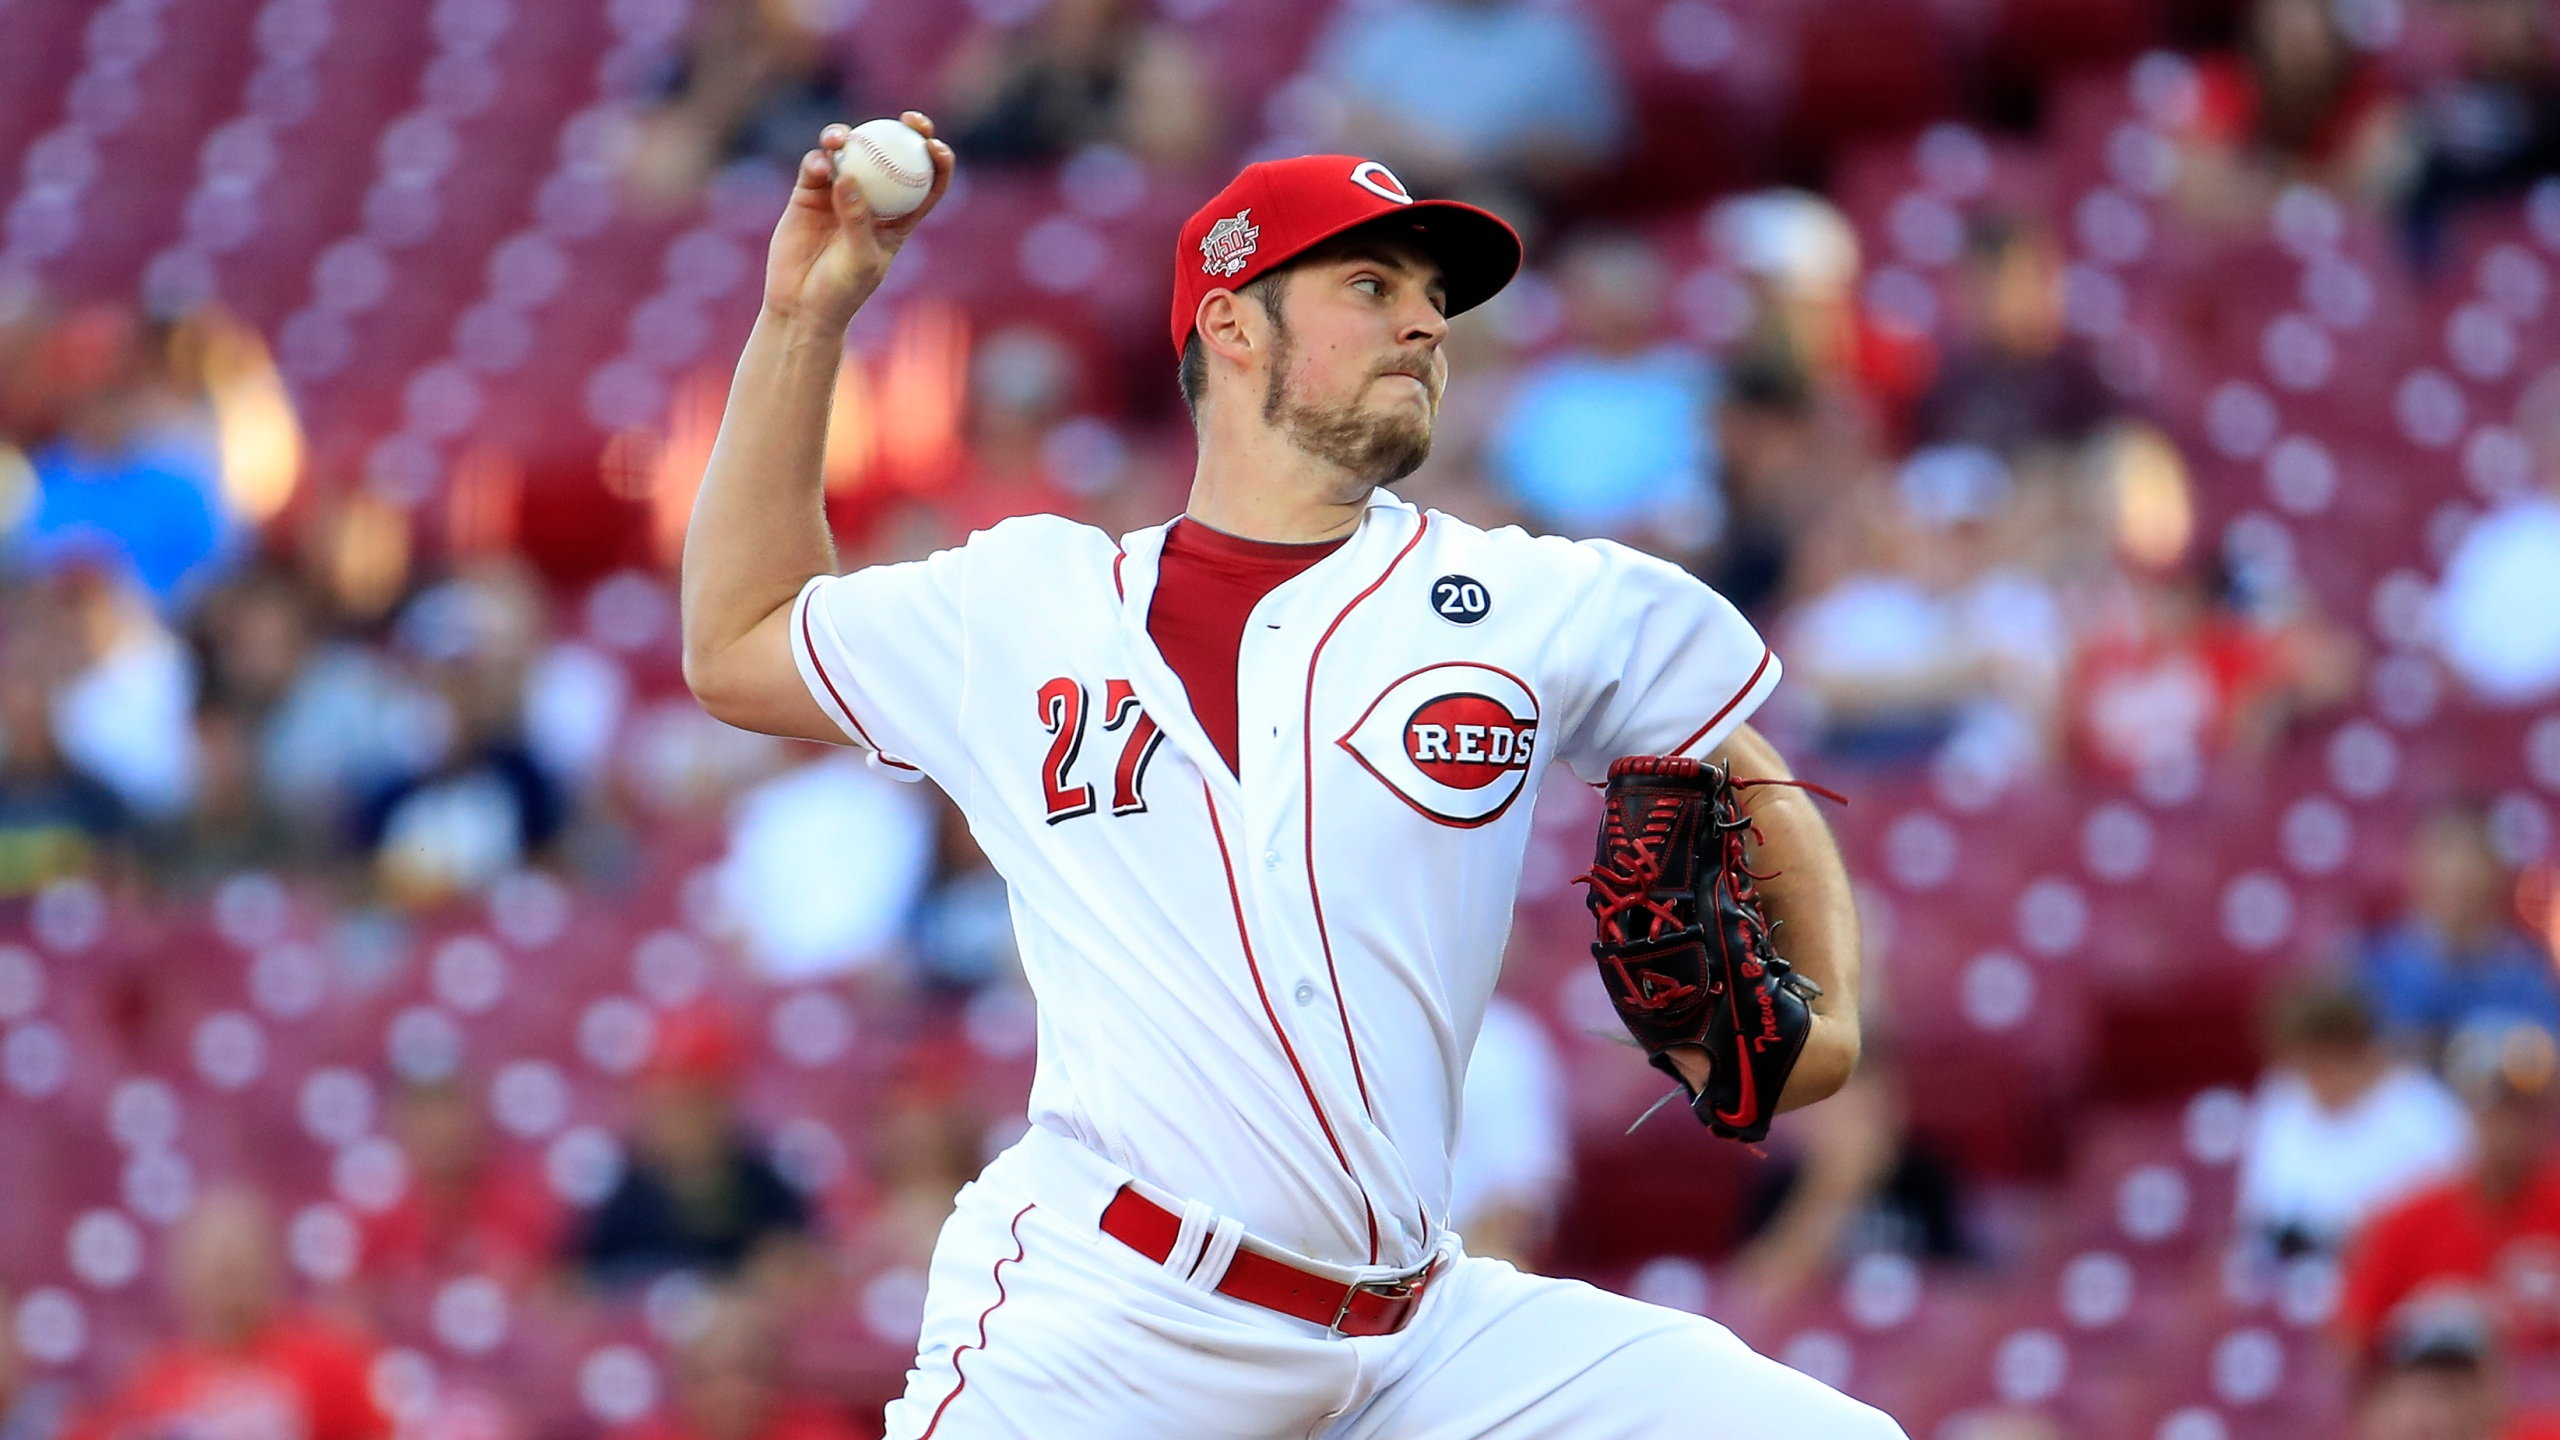 Trevor Bauer of the Cincinnati Reds throws a pitch against the Philadelphia Phillies at Great American Ball Park on Sept. 04, 2019, in Cincinnati, Ohio. (Andy Lyons/Getty Images)